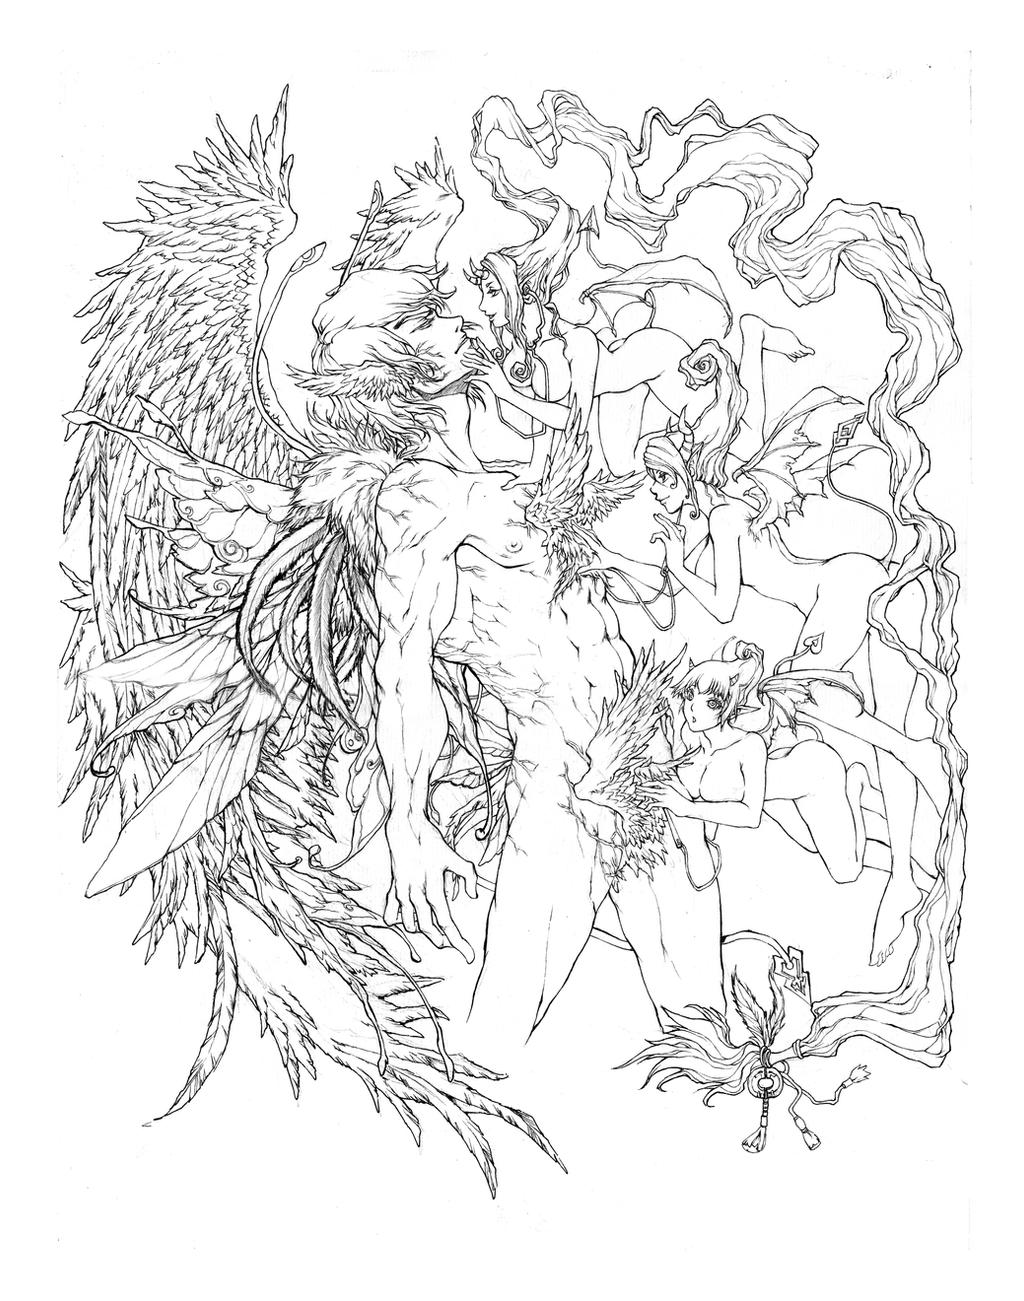 Obsession of Wings- How to make an angel(lineart) by KenshjnPark